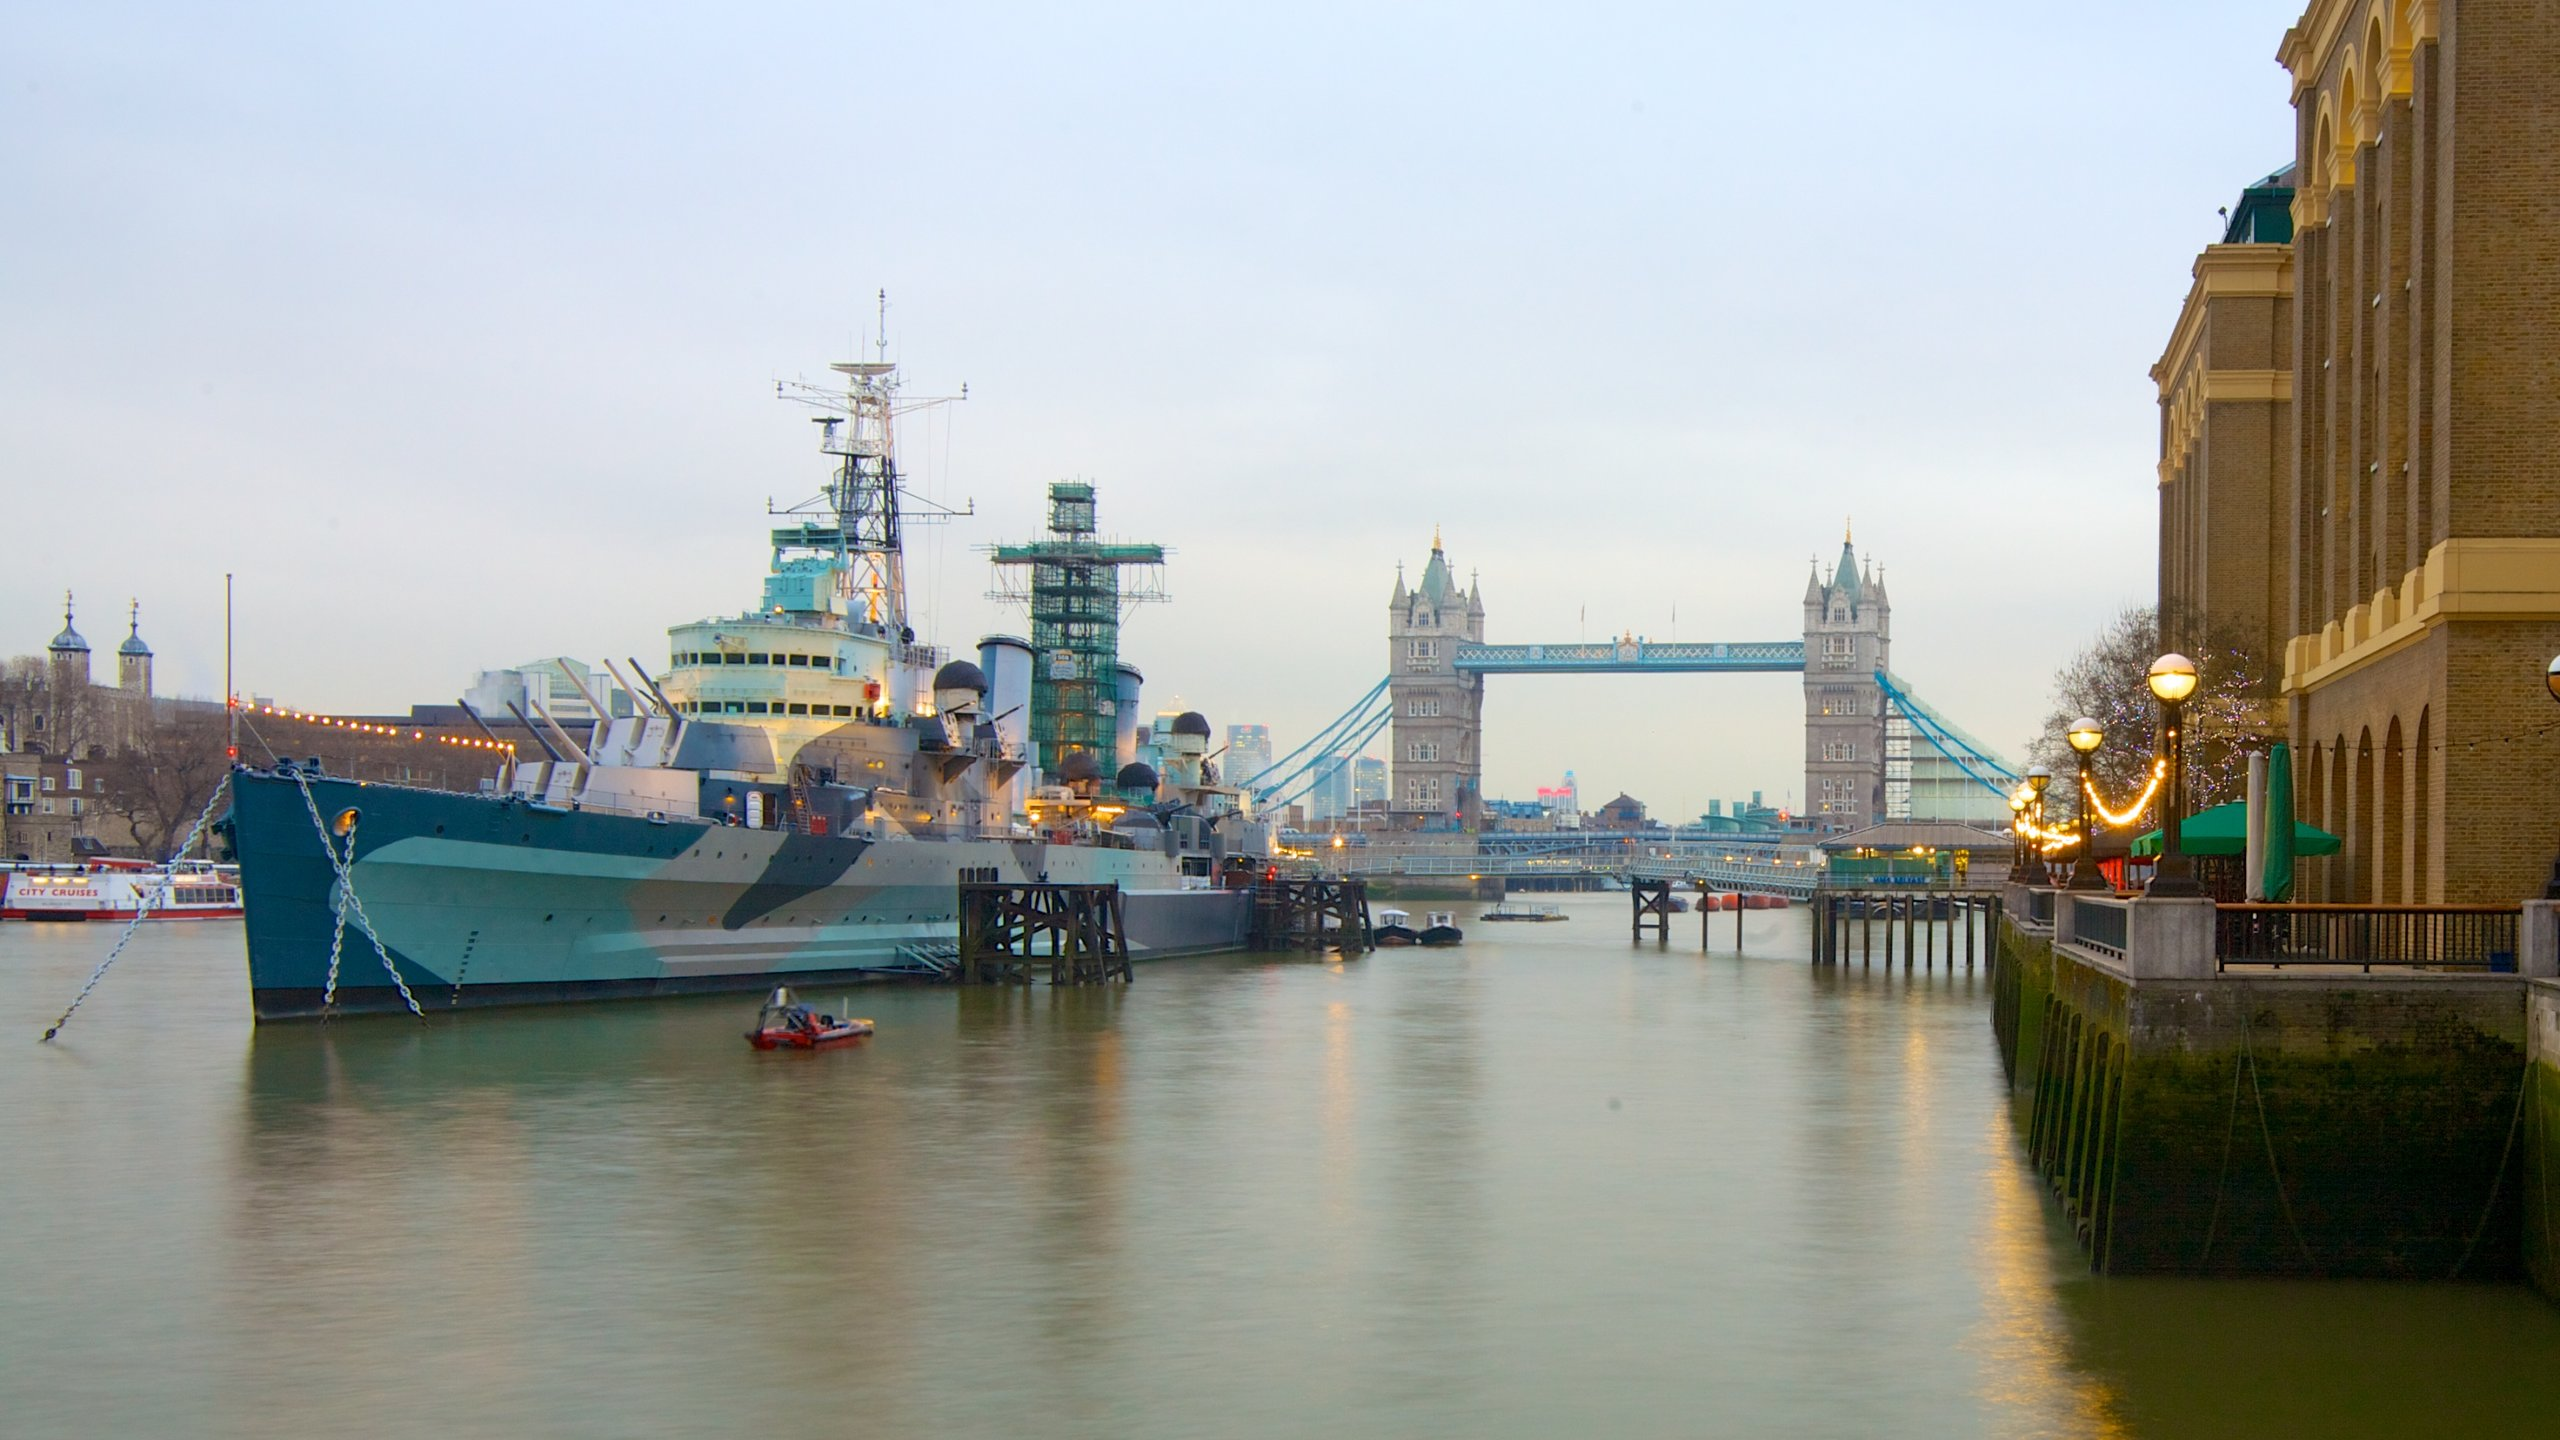 Sail on the water or walk along the riverbank to admire the scenery and take a trip through time on London's great river.